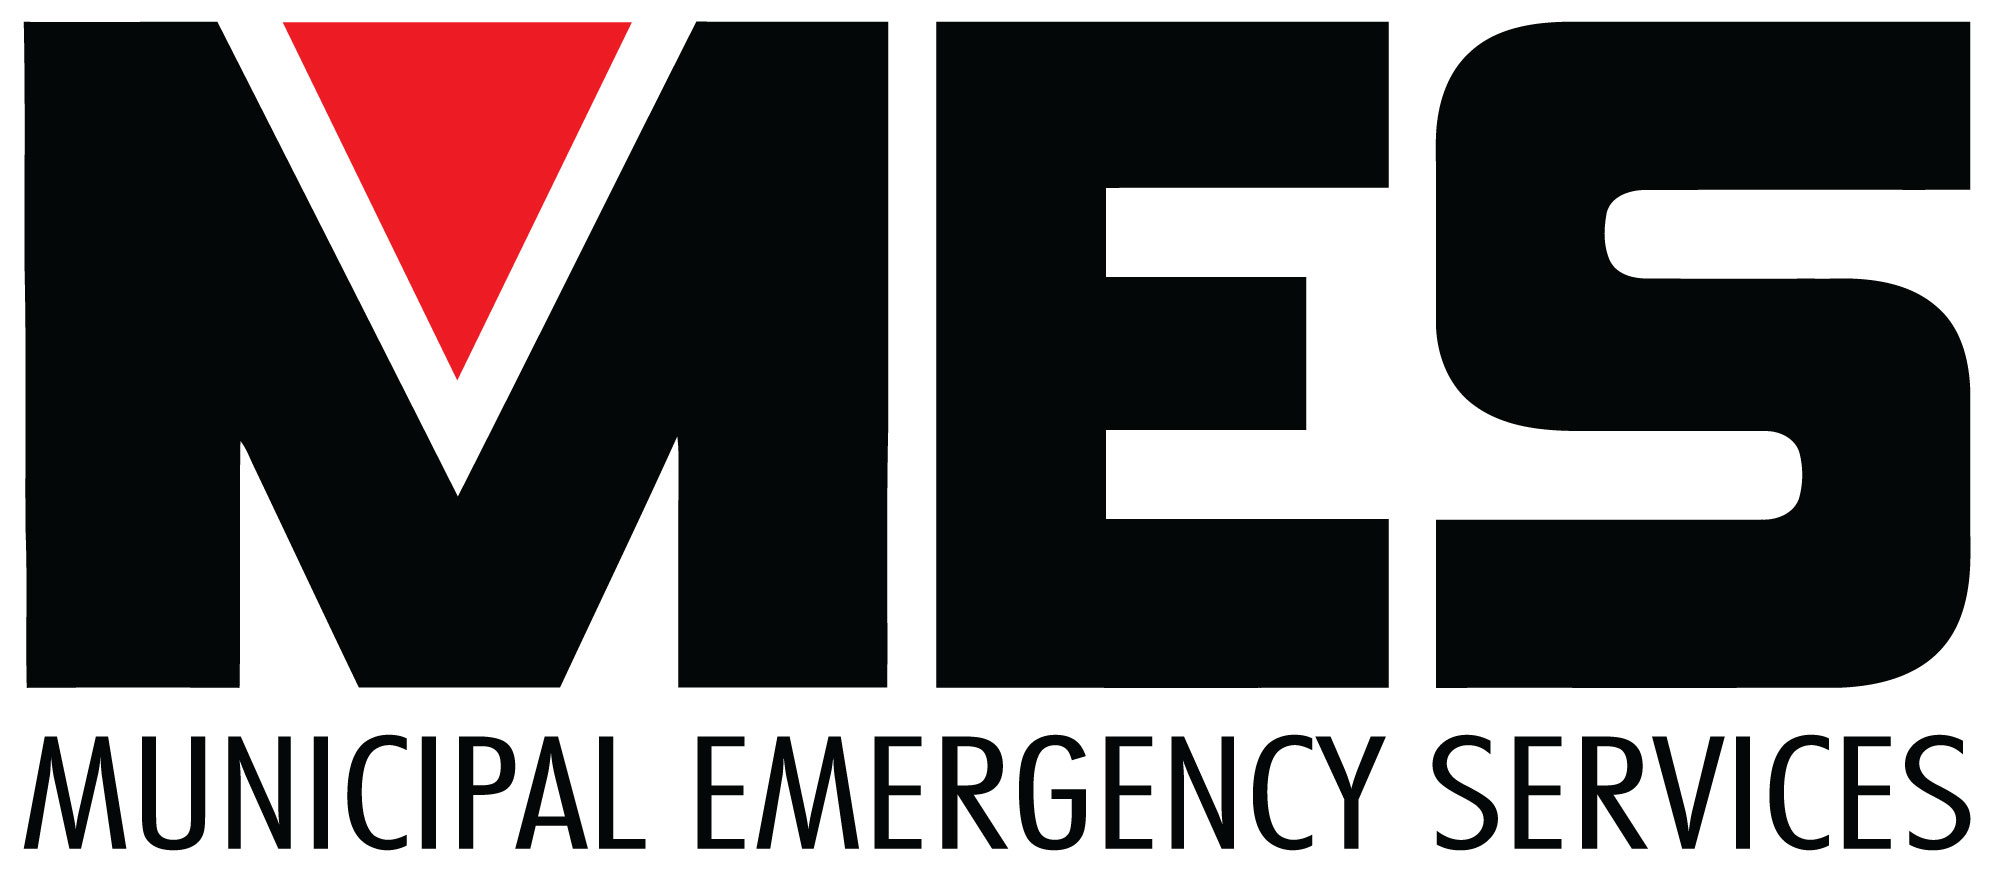 MES, Inc. Acquires Intellectual Property, Designs, Patents and Trademarks for the RevolveAir, Smart Fill and RevolveAir Connect Products from 3M